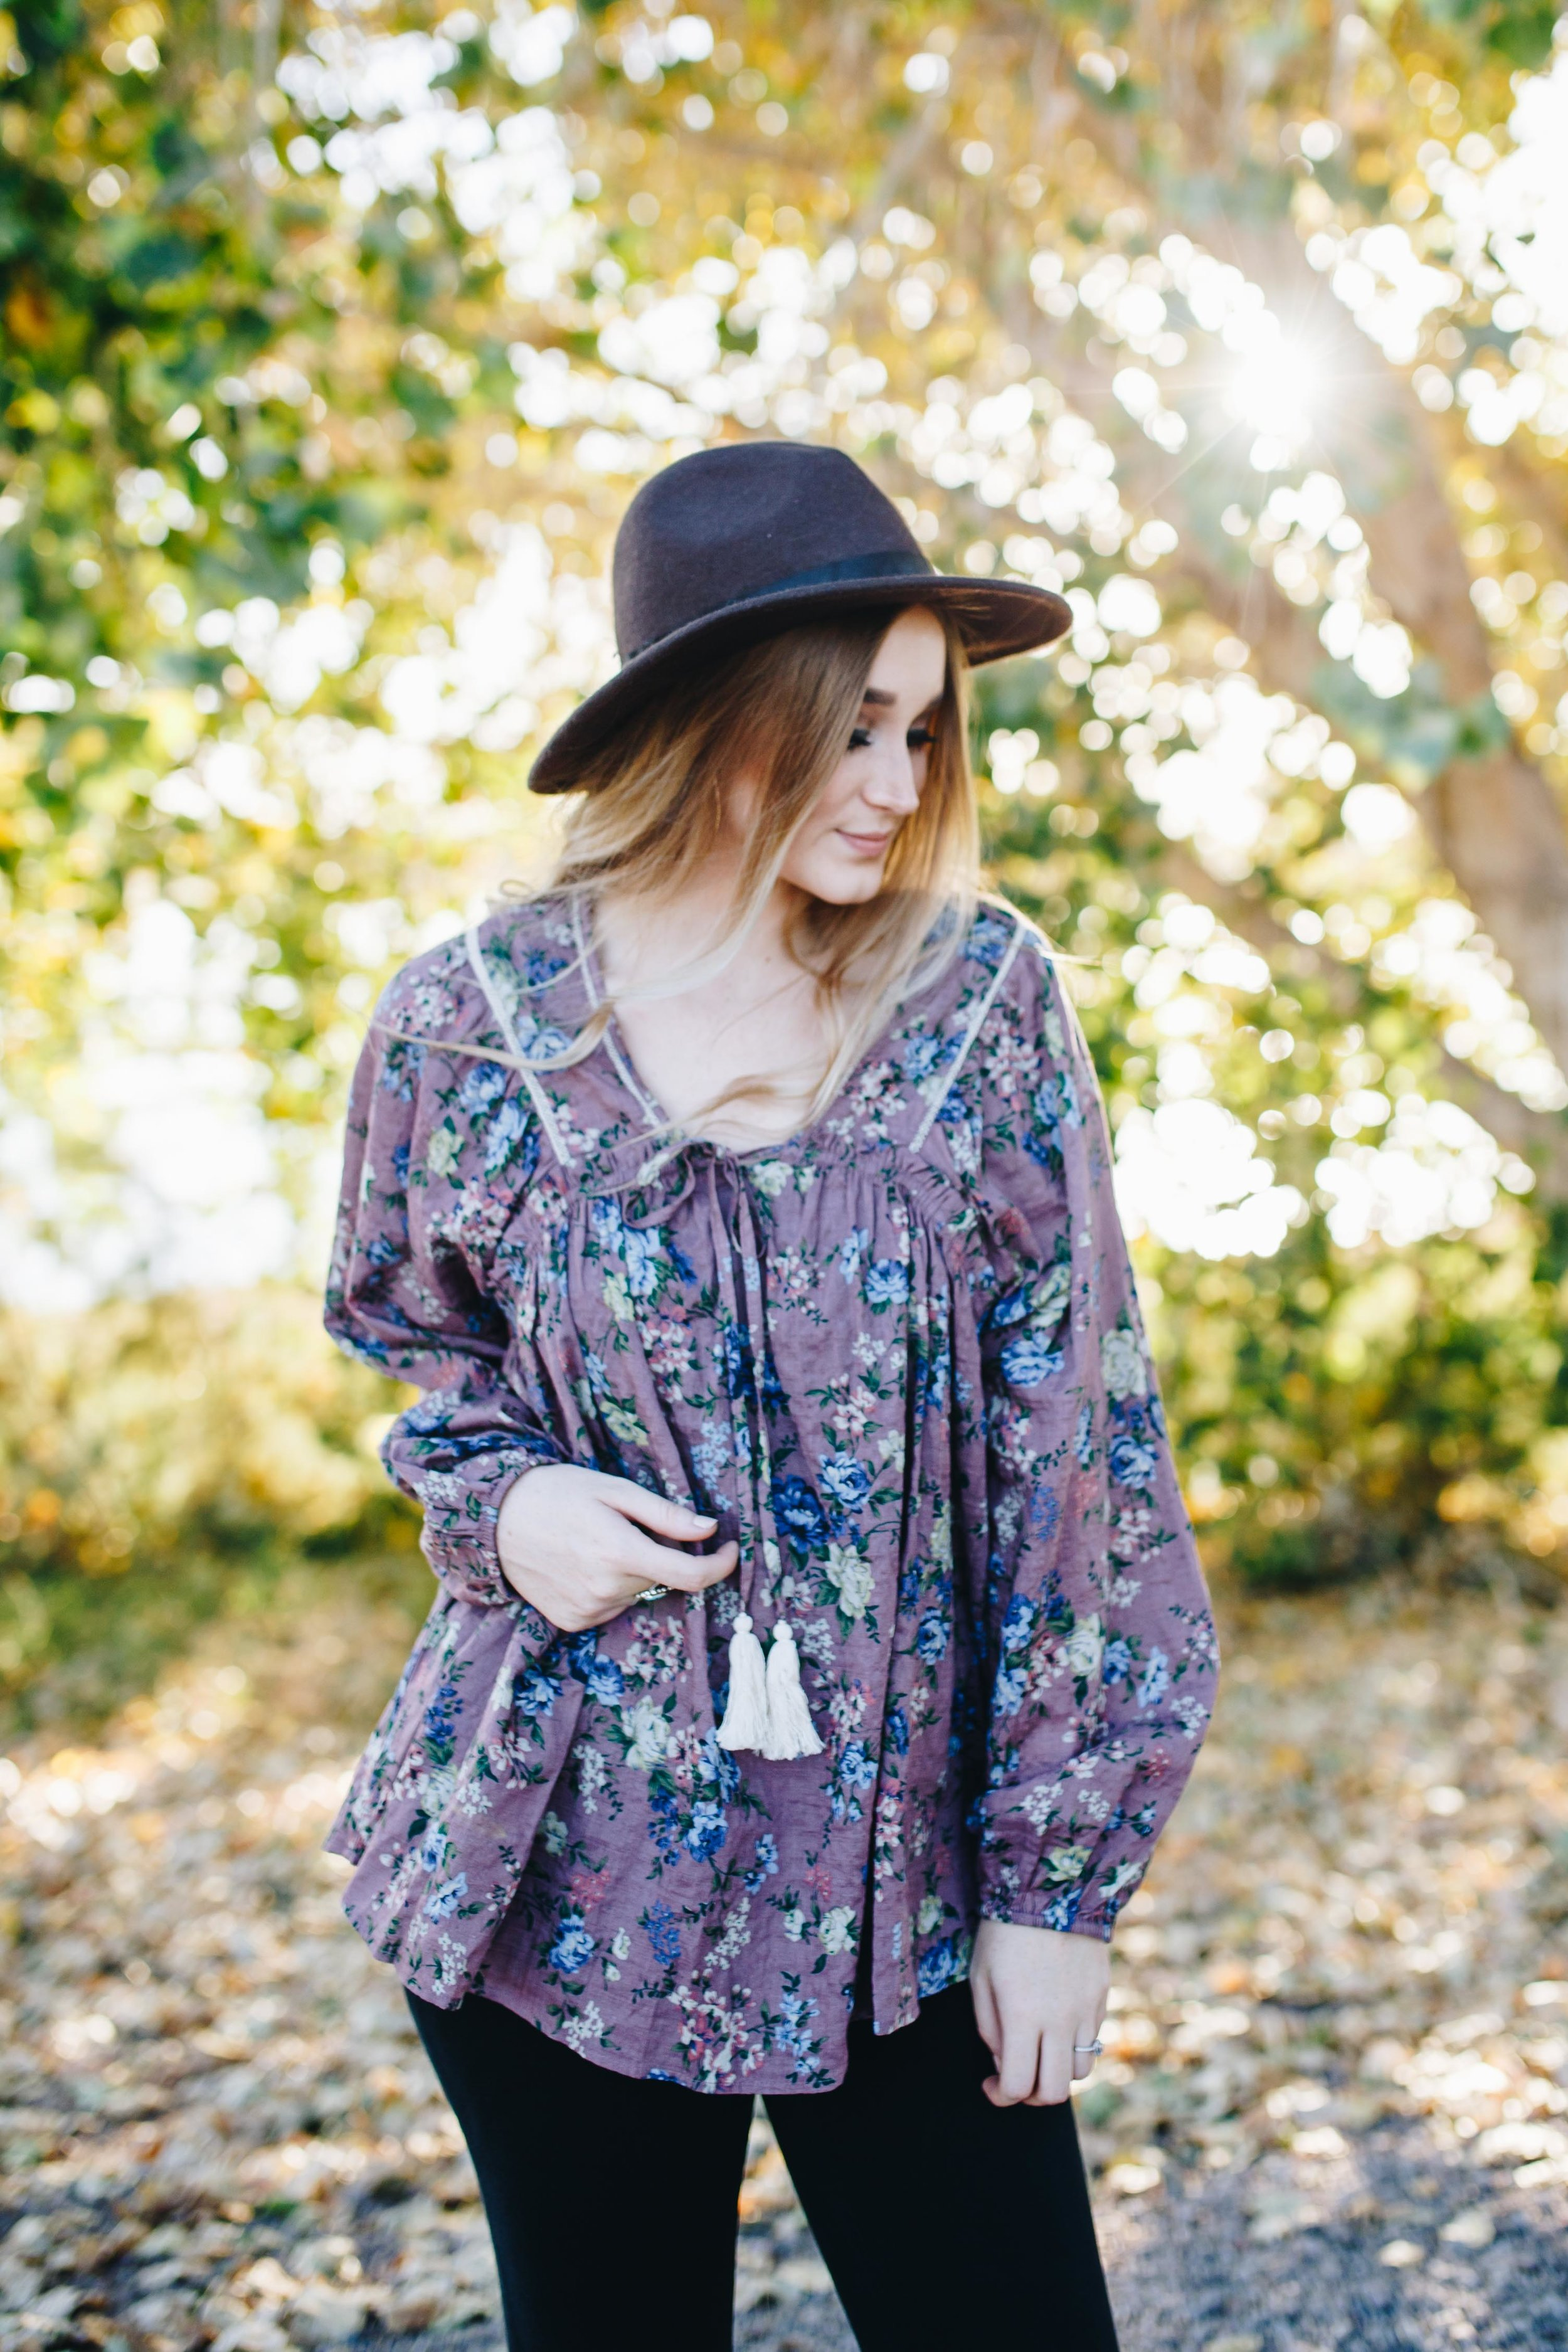 AuthenticabyFrancesca-SheaBriePhotography-Styles2youFall-96.jpg